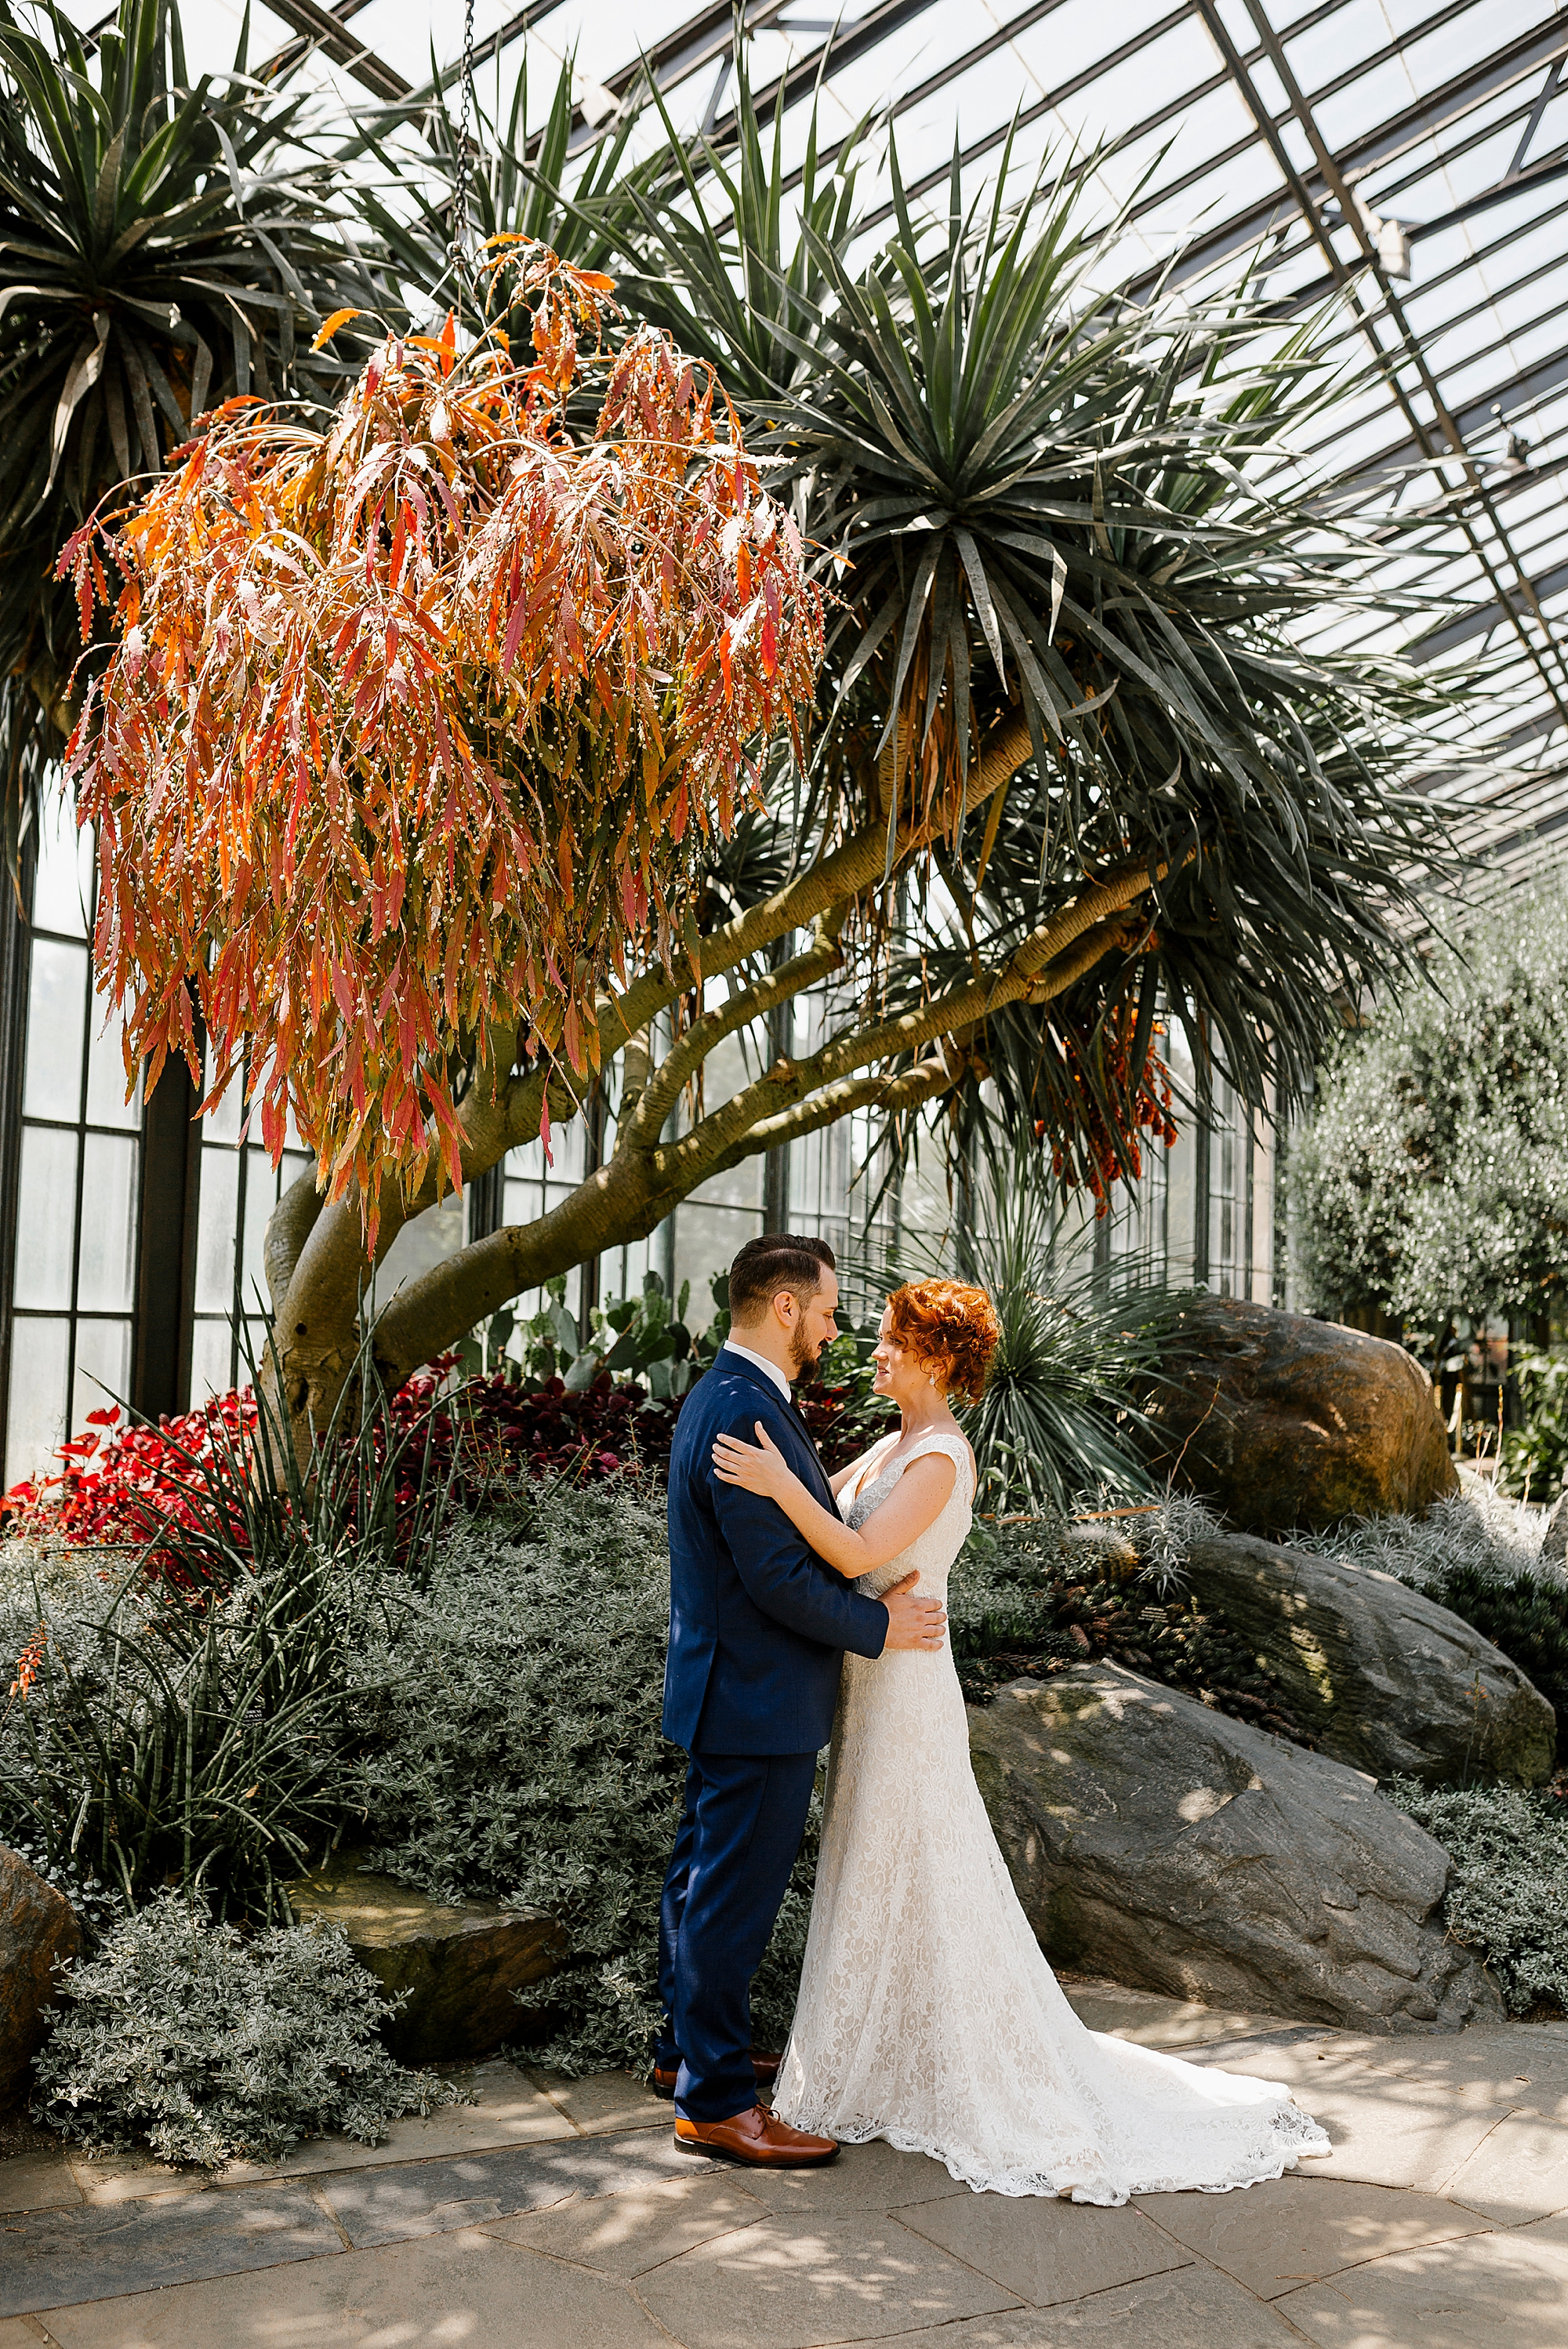 Megan and Daniel_Northbrook_Marketplace_Longwood_Gardens_Chester_County_Unionville_Love_by_Joe_Mac_Wedding_photography__0068.jpg